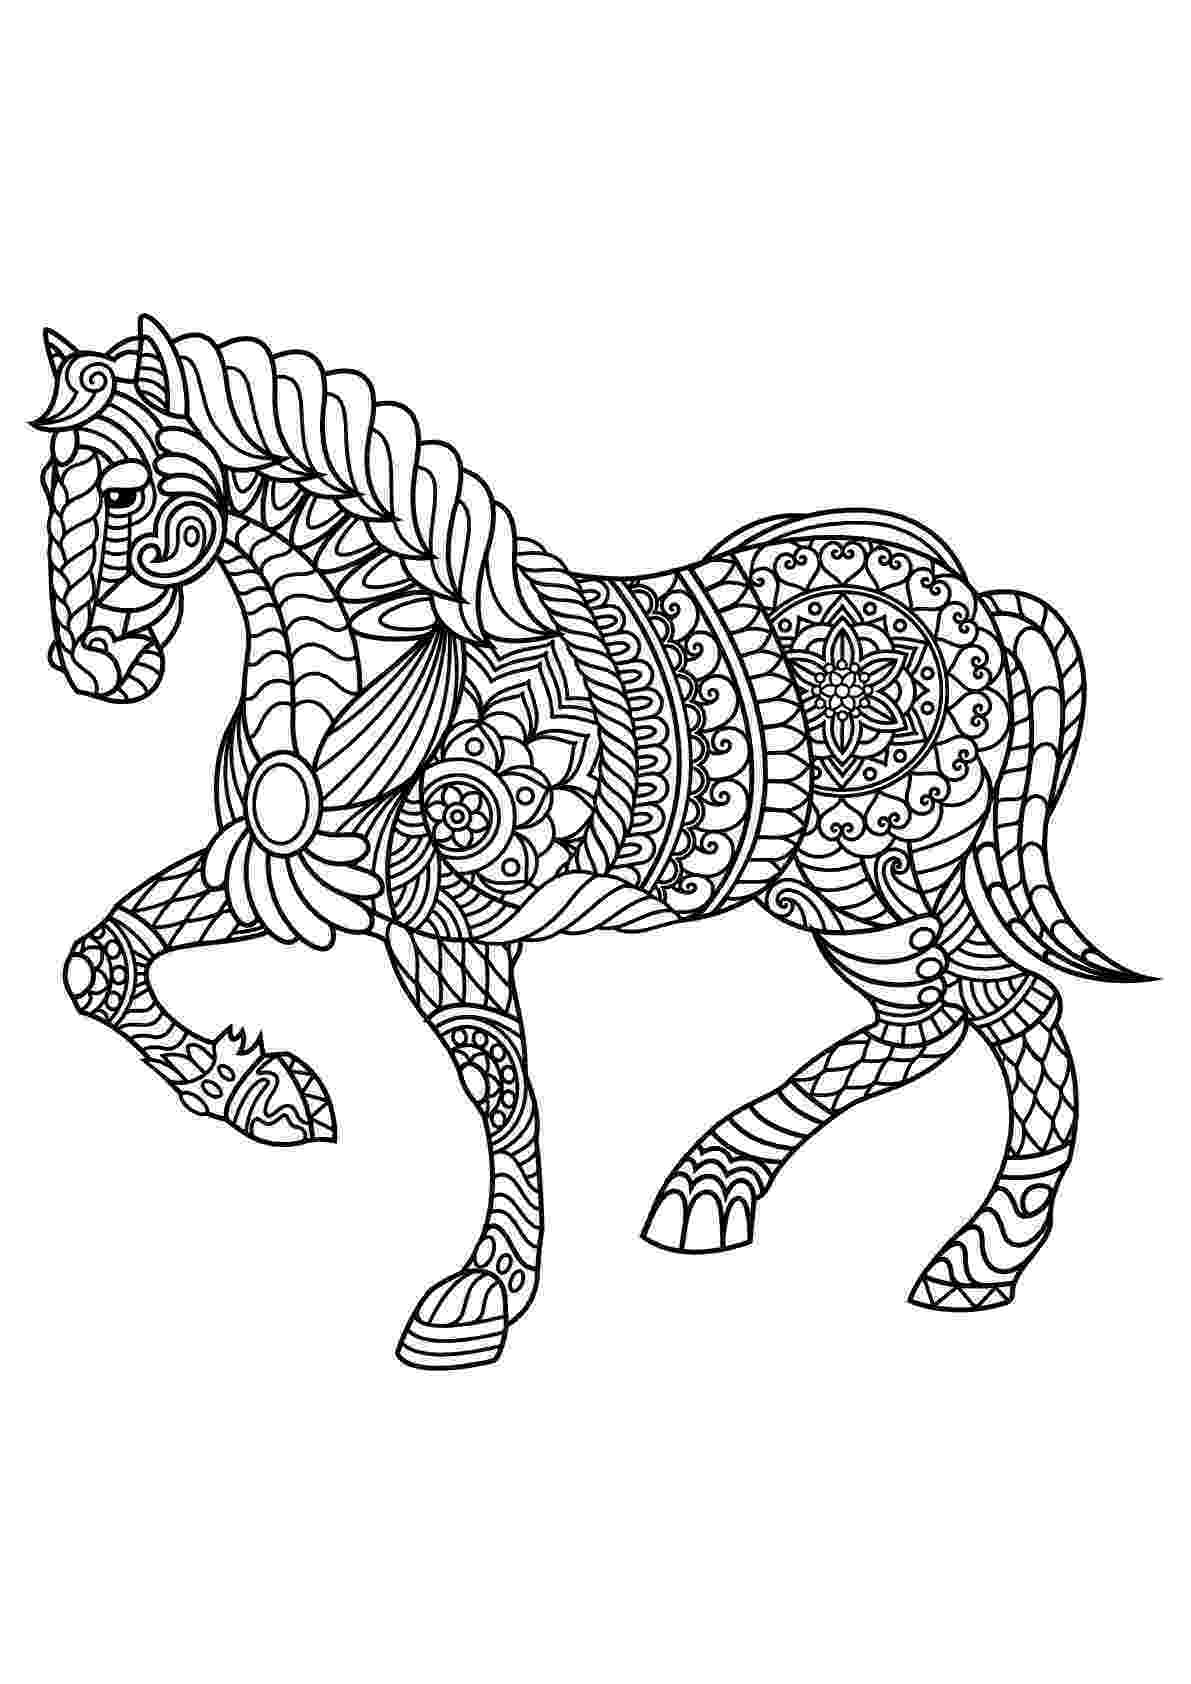 horse coloring pages to print for free coloring pages for kids horse coloring pages coloring pages for free to horse print